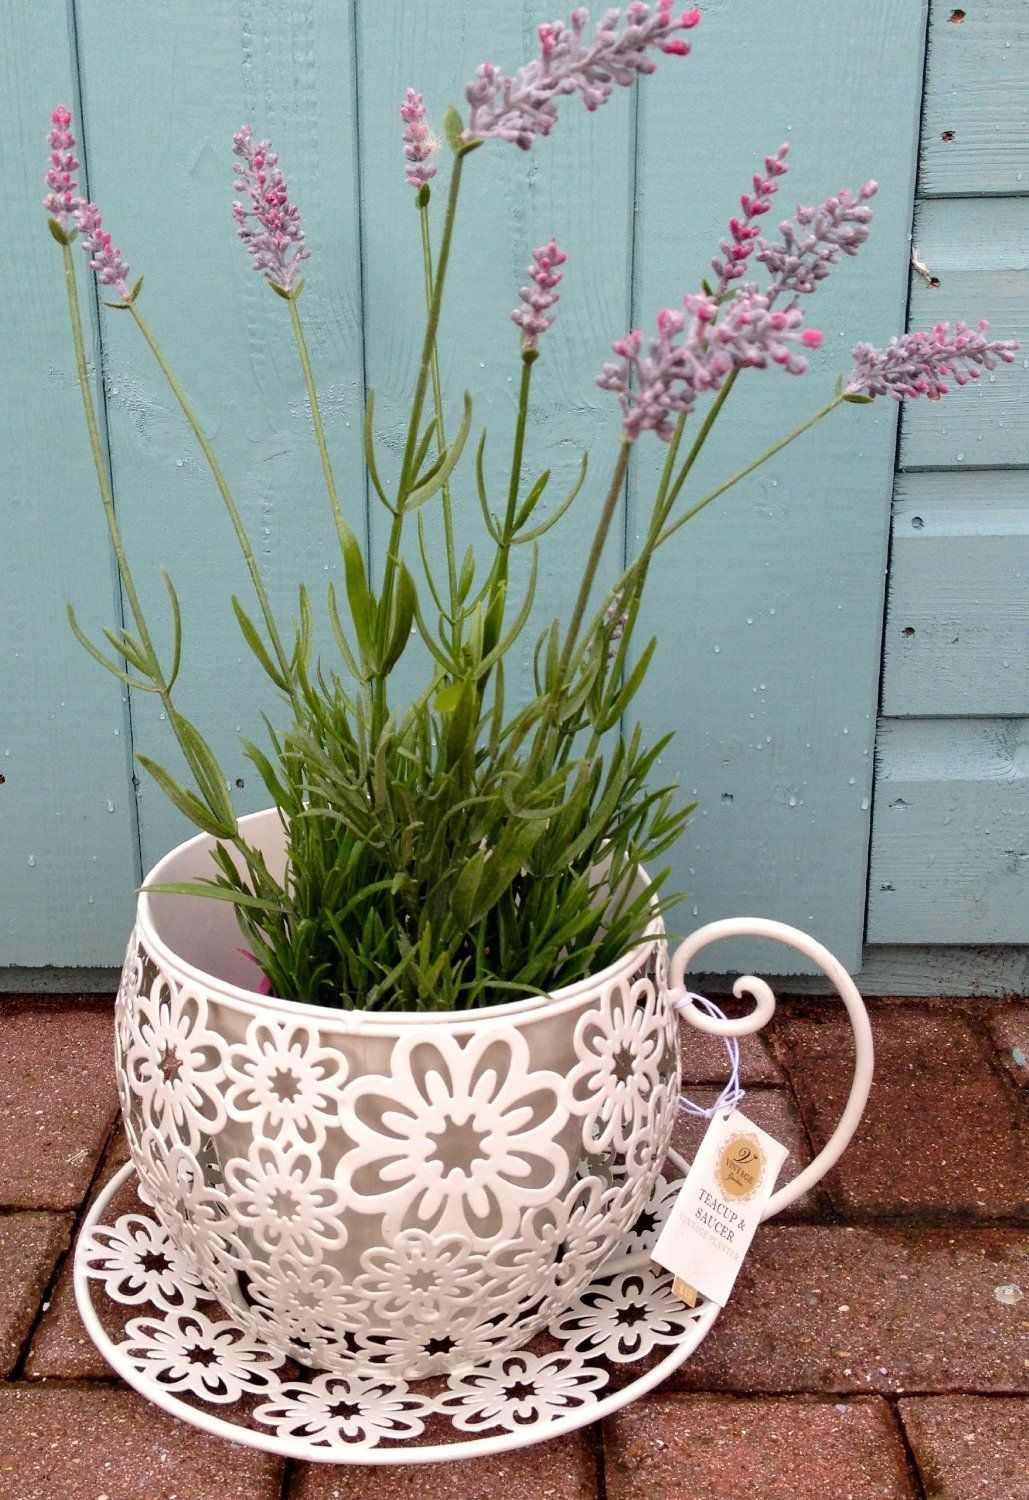 Amazon Garden Pots And Planters Shabby Vintage Chic Tea Cup Planter Plant Pot Holder